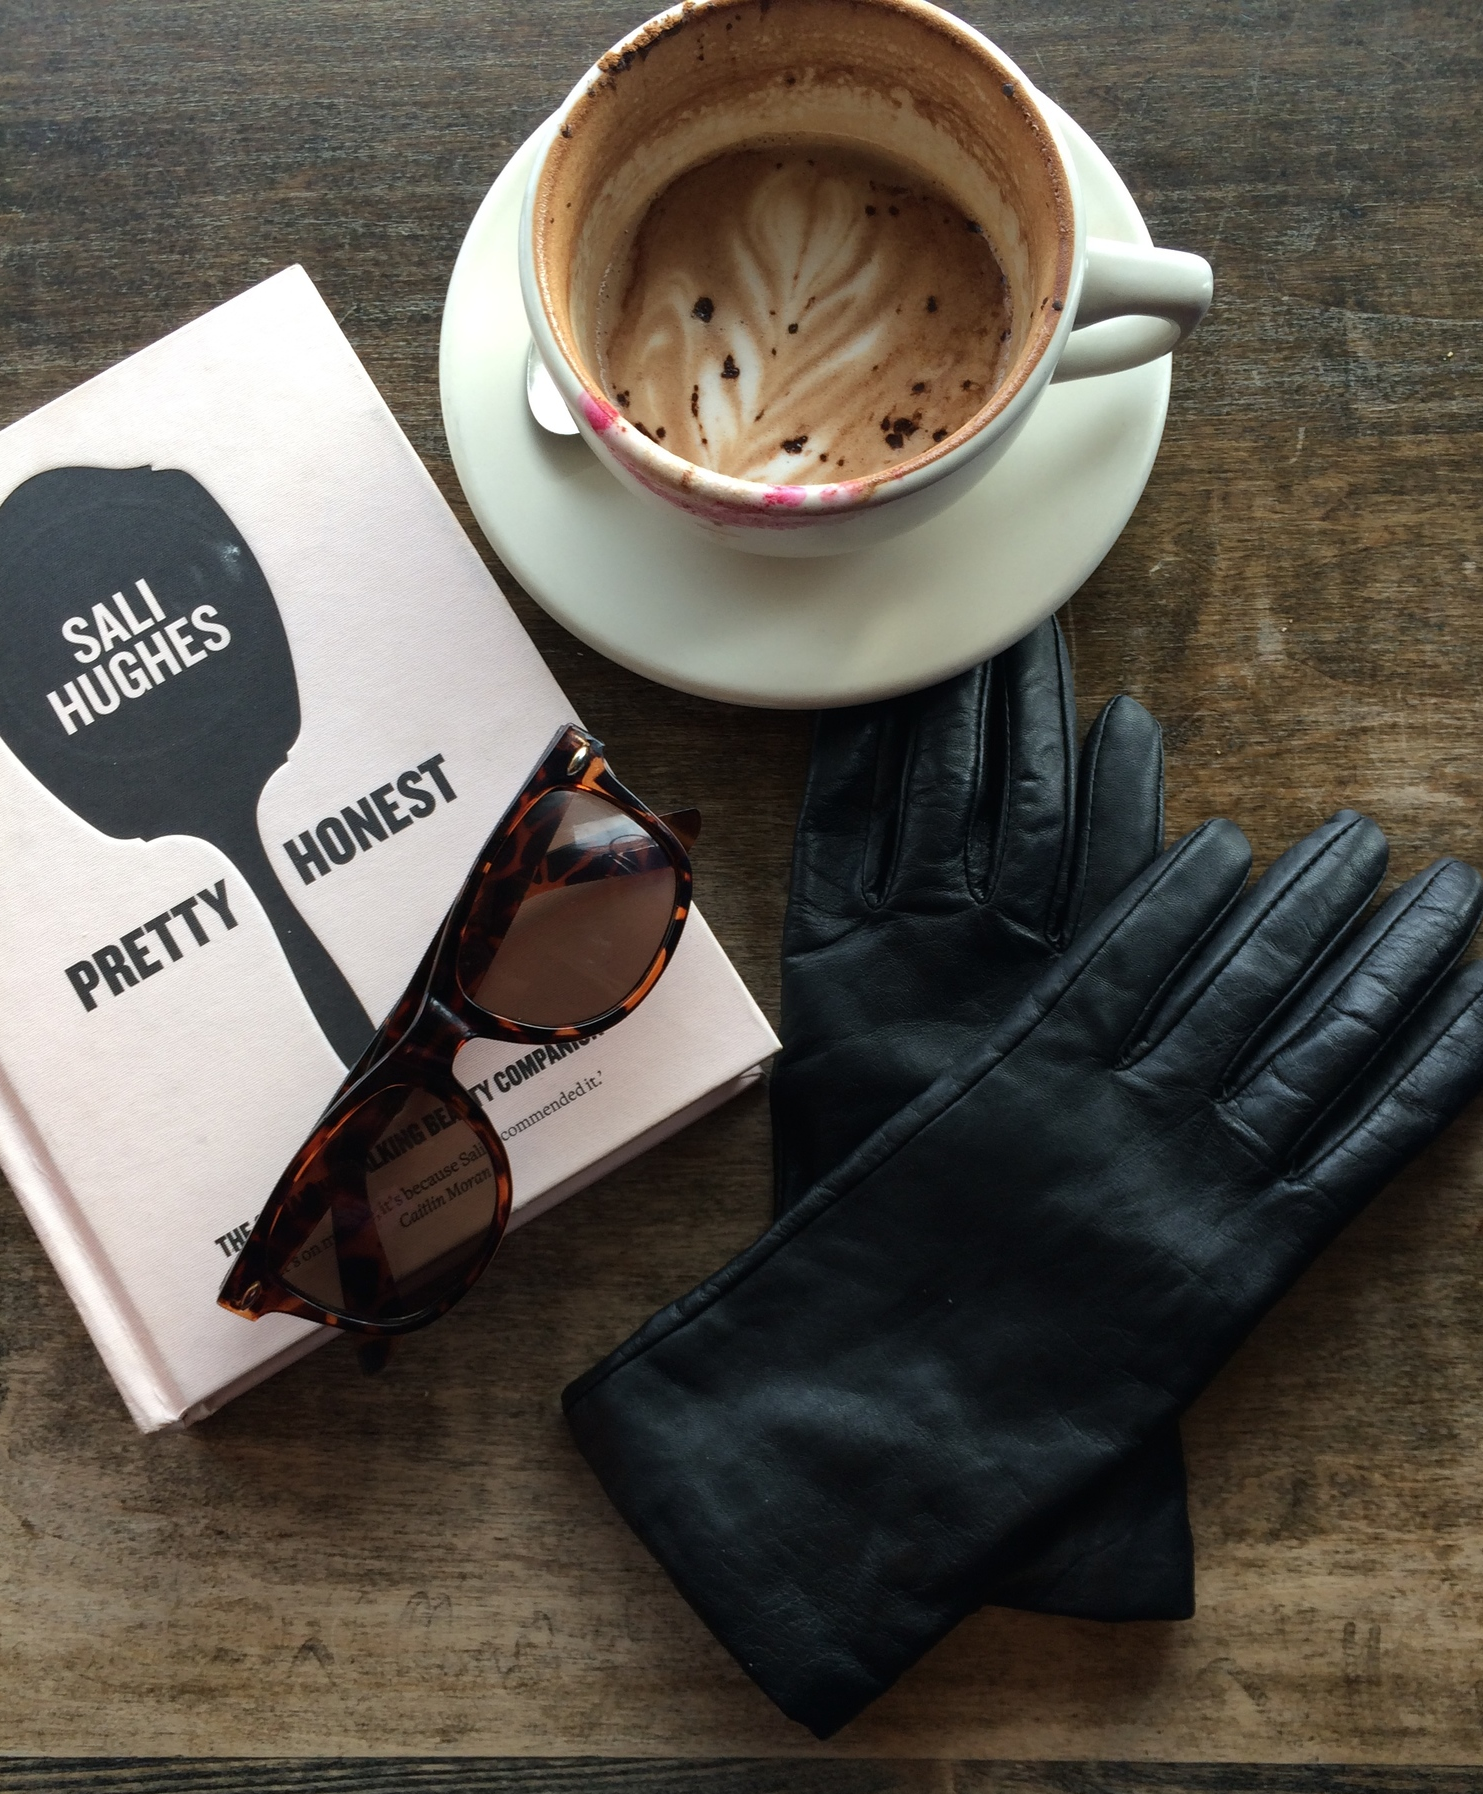 10. Memories of my weekend in Boston: Sali Hughes's Pretty Honest   Lined Leather Gloves   Coffee at Simon's